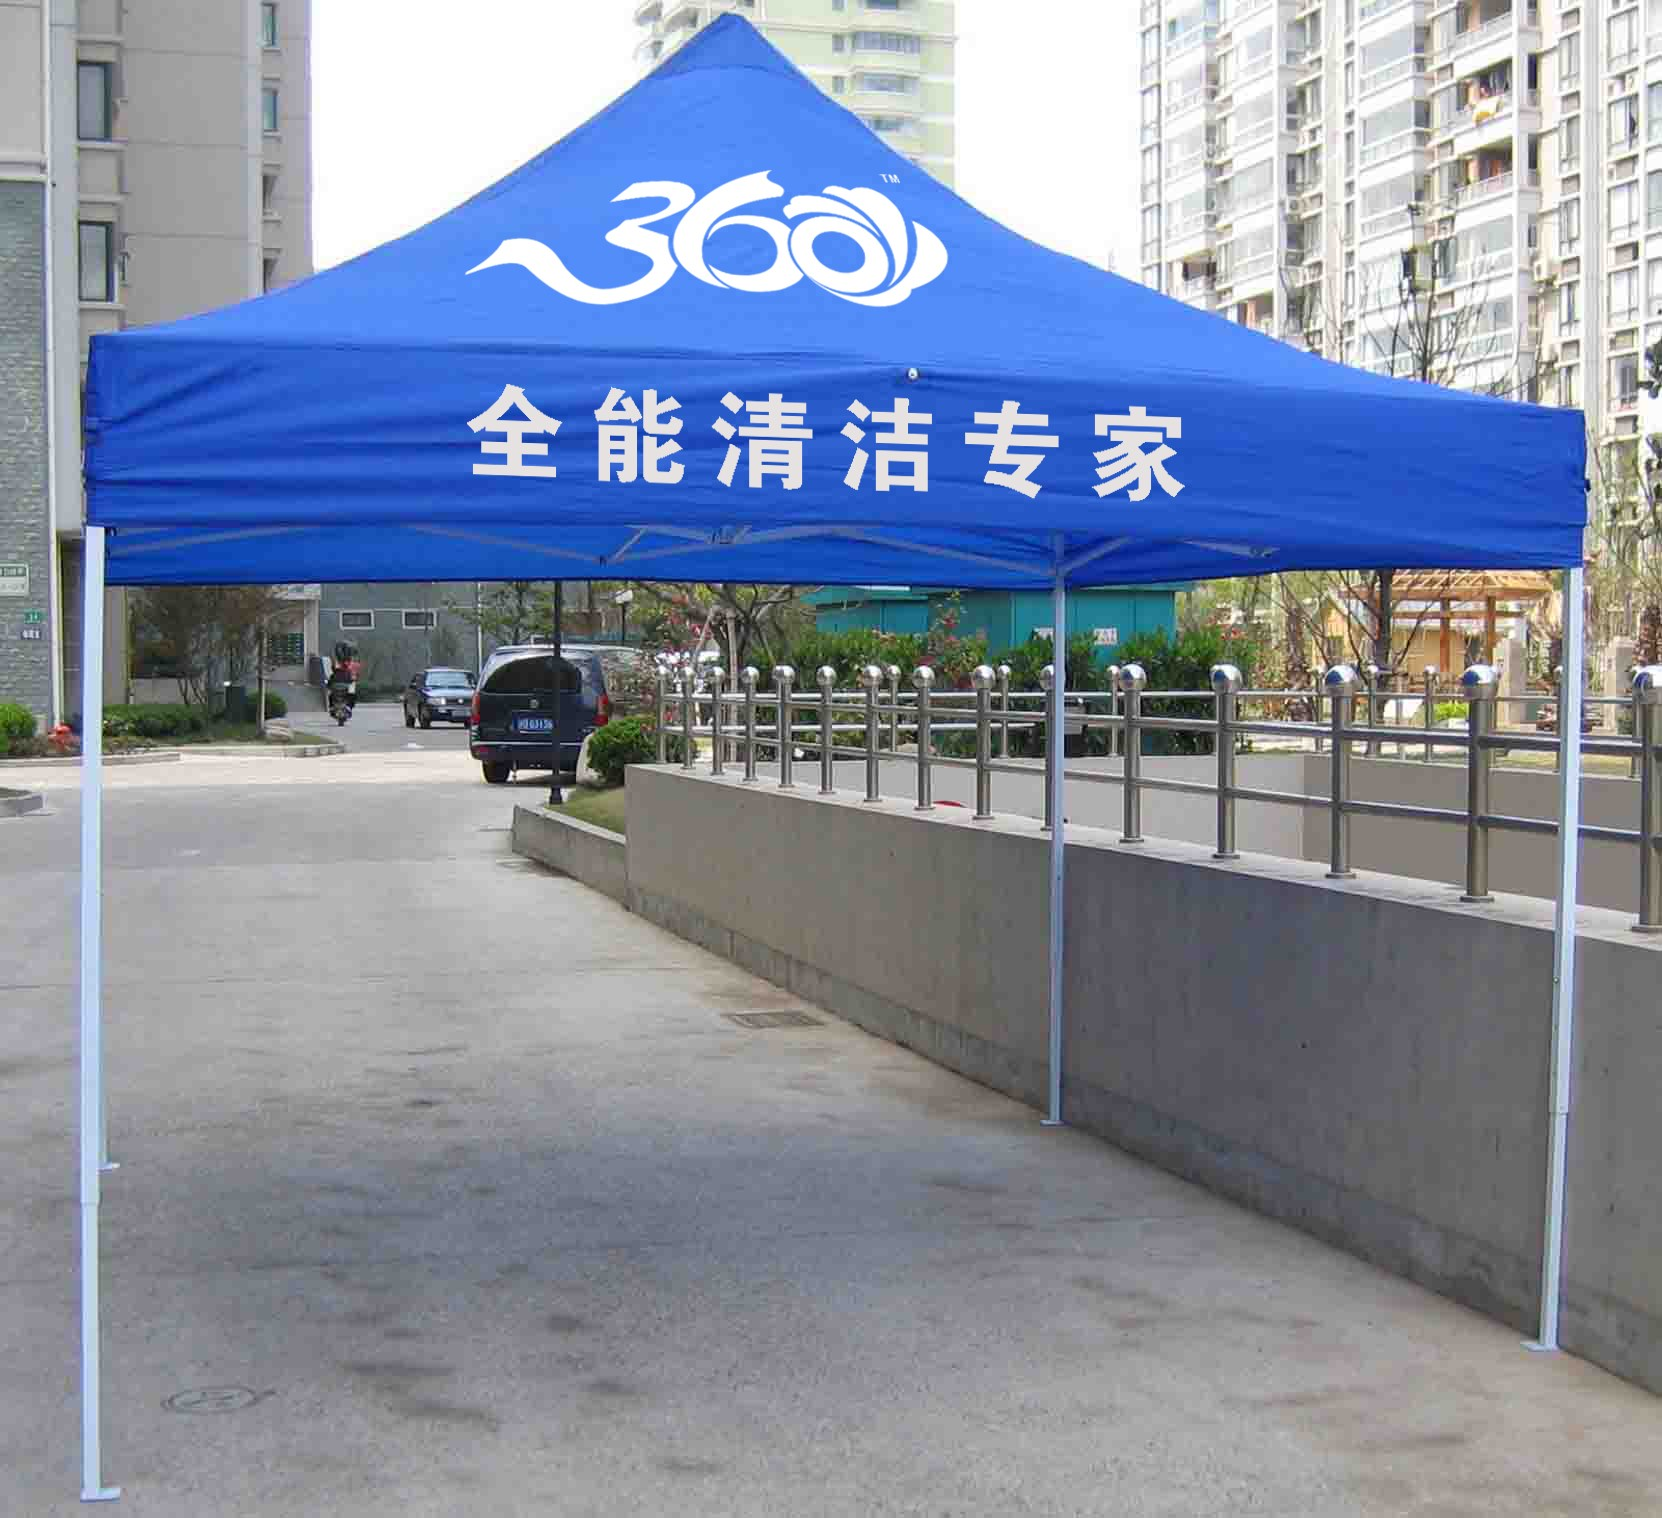 3*3 Advertising Tent Thickened Umbrella Outdoor Folding Printing Customized Spread Stand, Sunshade, Telescopic Tent, Exhibition and Sales Tent